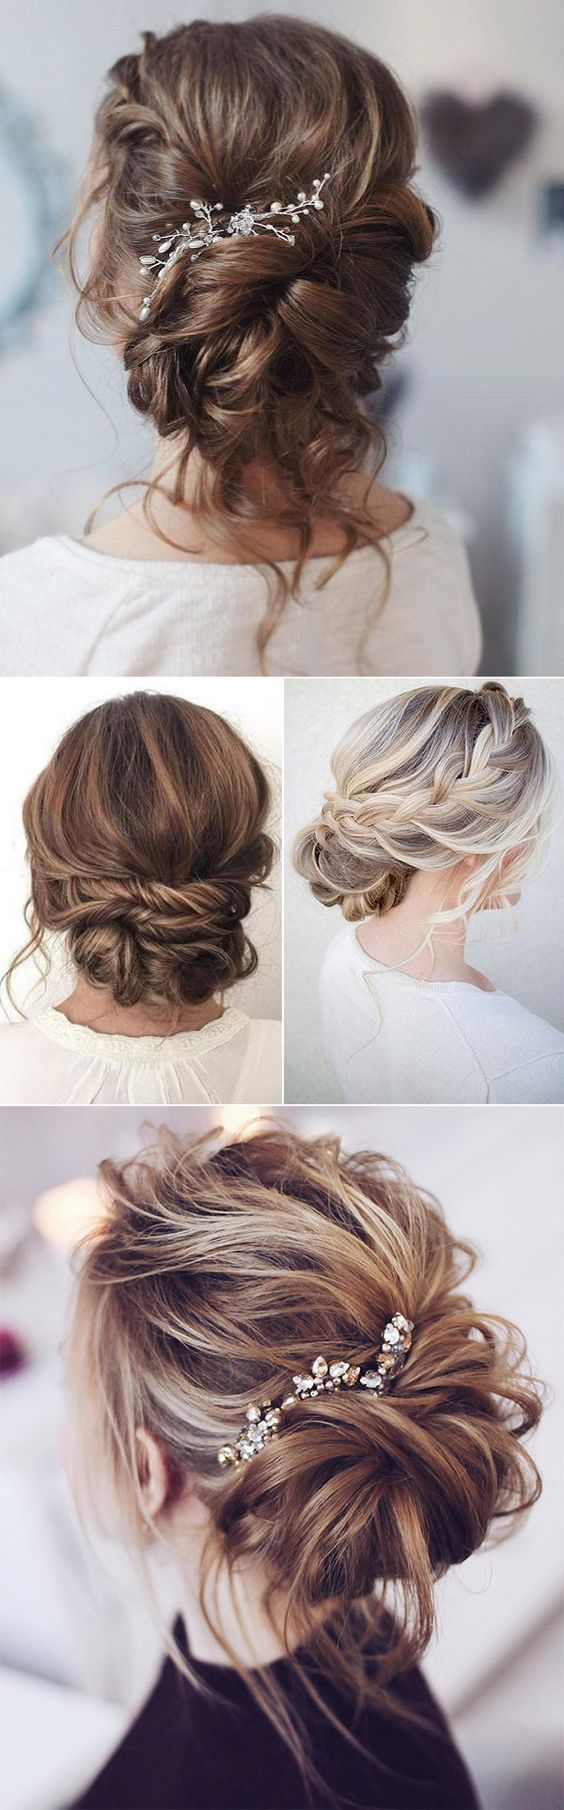 Beautiful loose bridal updo hairstyle ideas bunman to the rescue